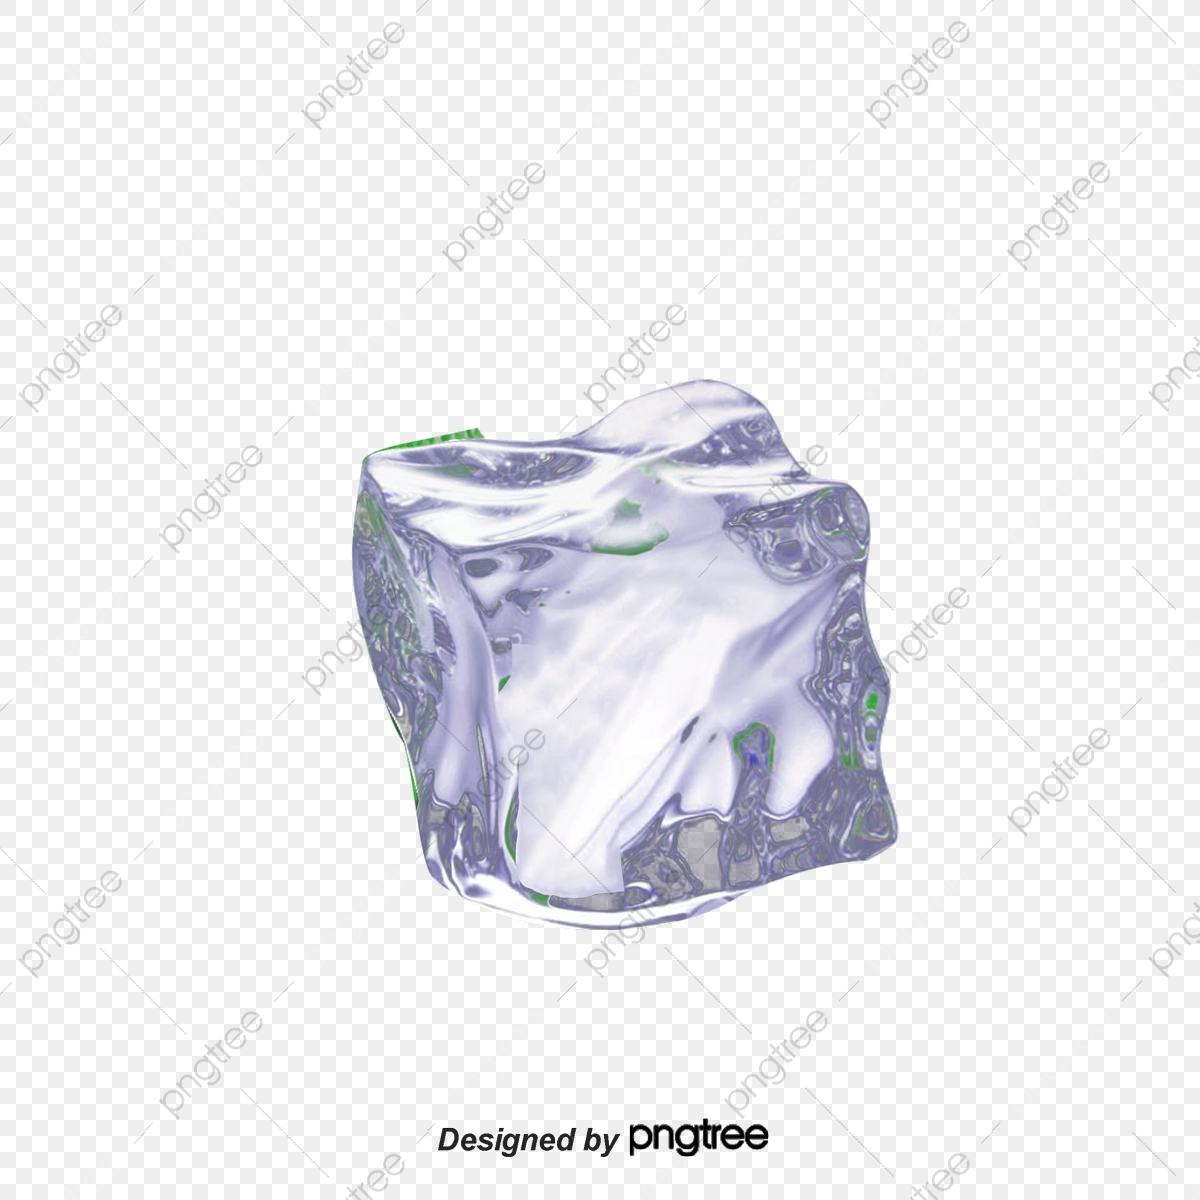 ice png vector psd and clipart with transparent background for free download pngtree https pngtree com freepng square ice cubes 3121399 html